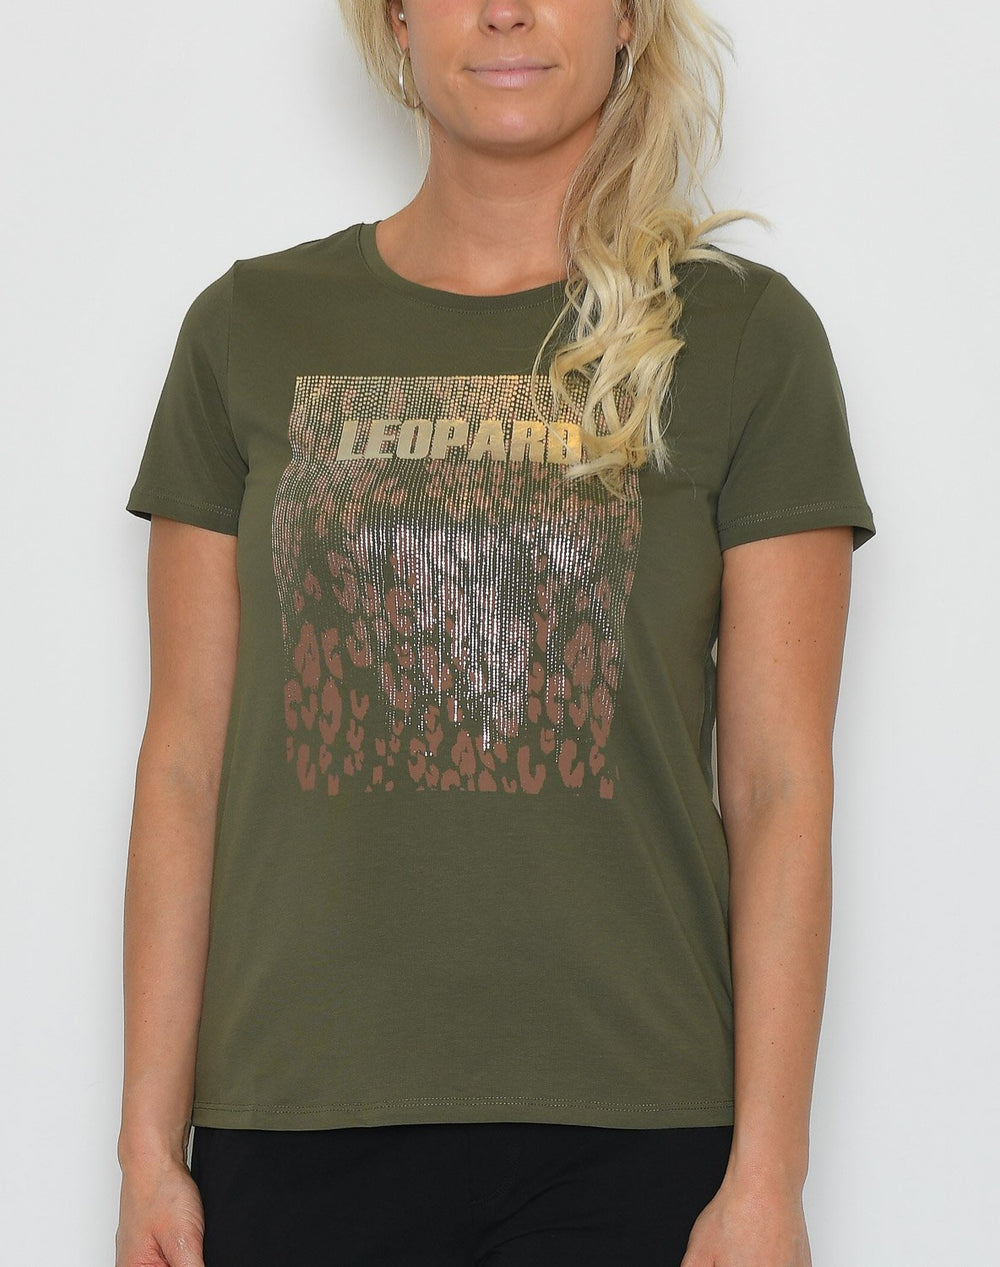 Culture CUdilara t-shirt army delight - Online-Mode